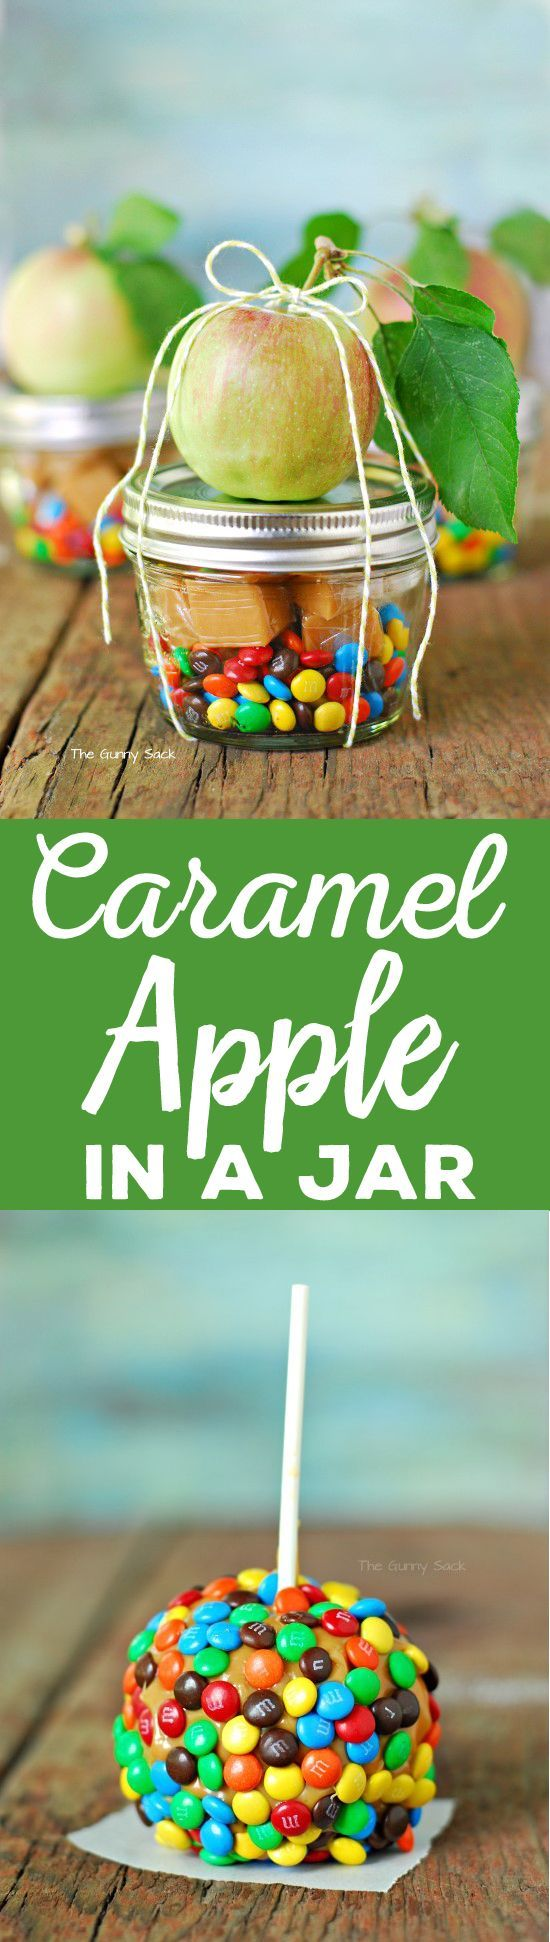 A dessert in a jar is so much fun and is a great fall party idea. This Caramel Apple In A Jar can even be given as a gift or party favor. (Fall Bake Creative)